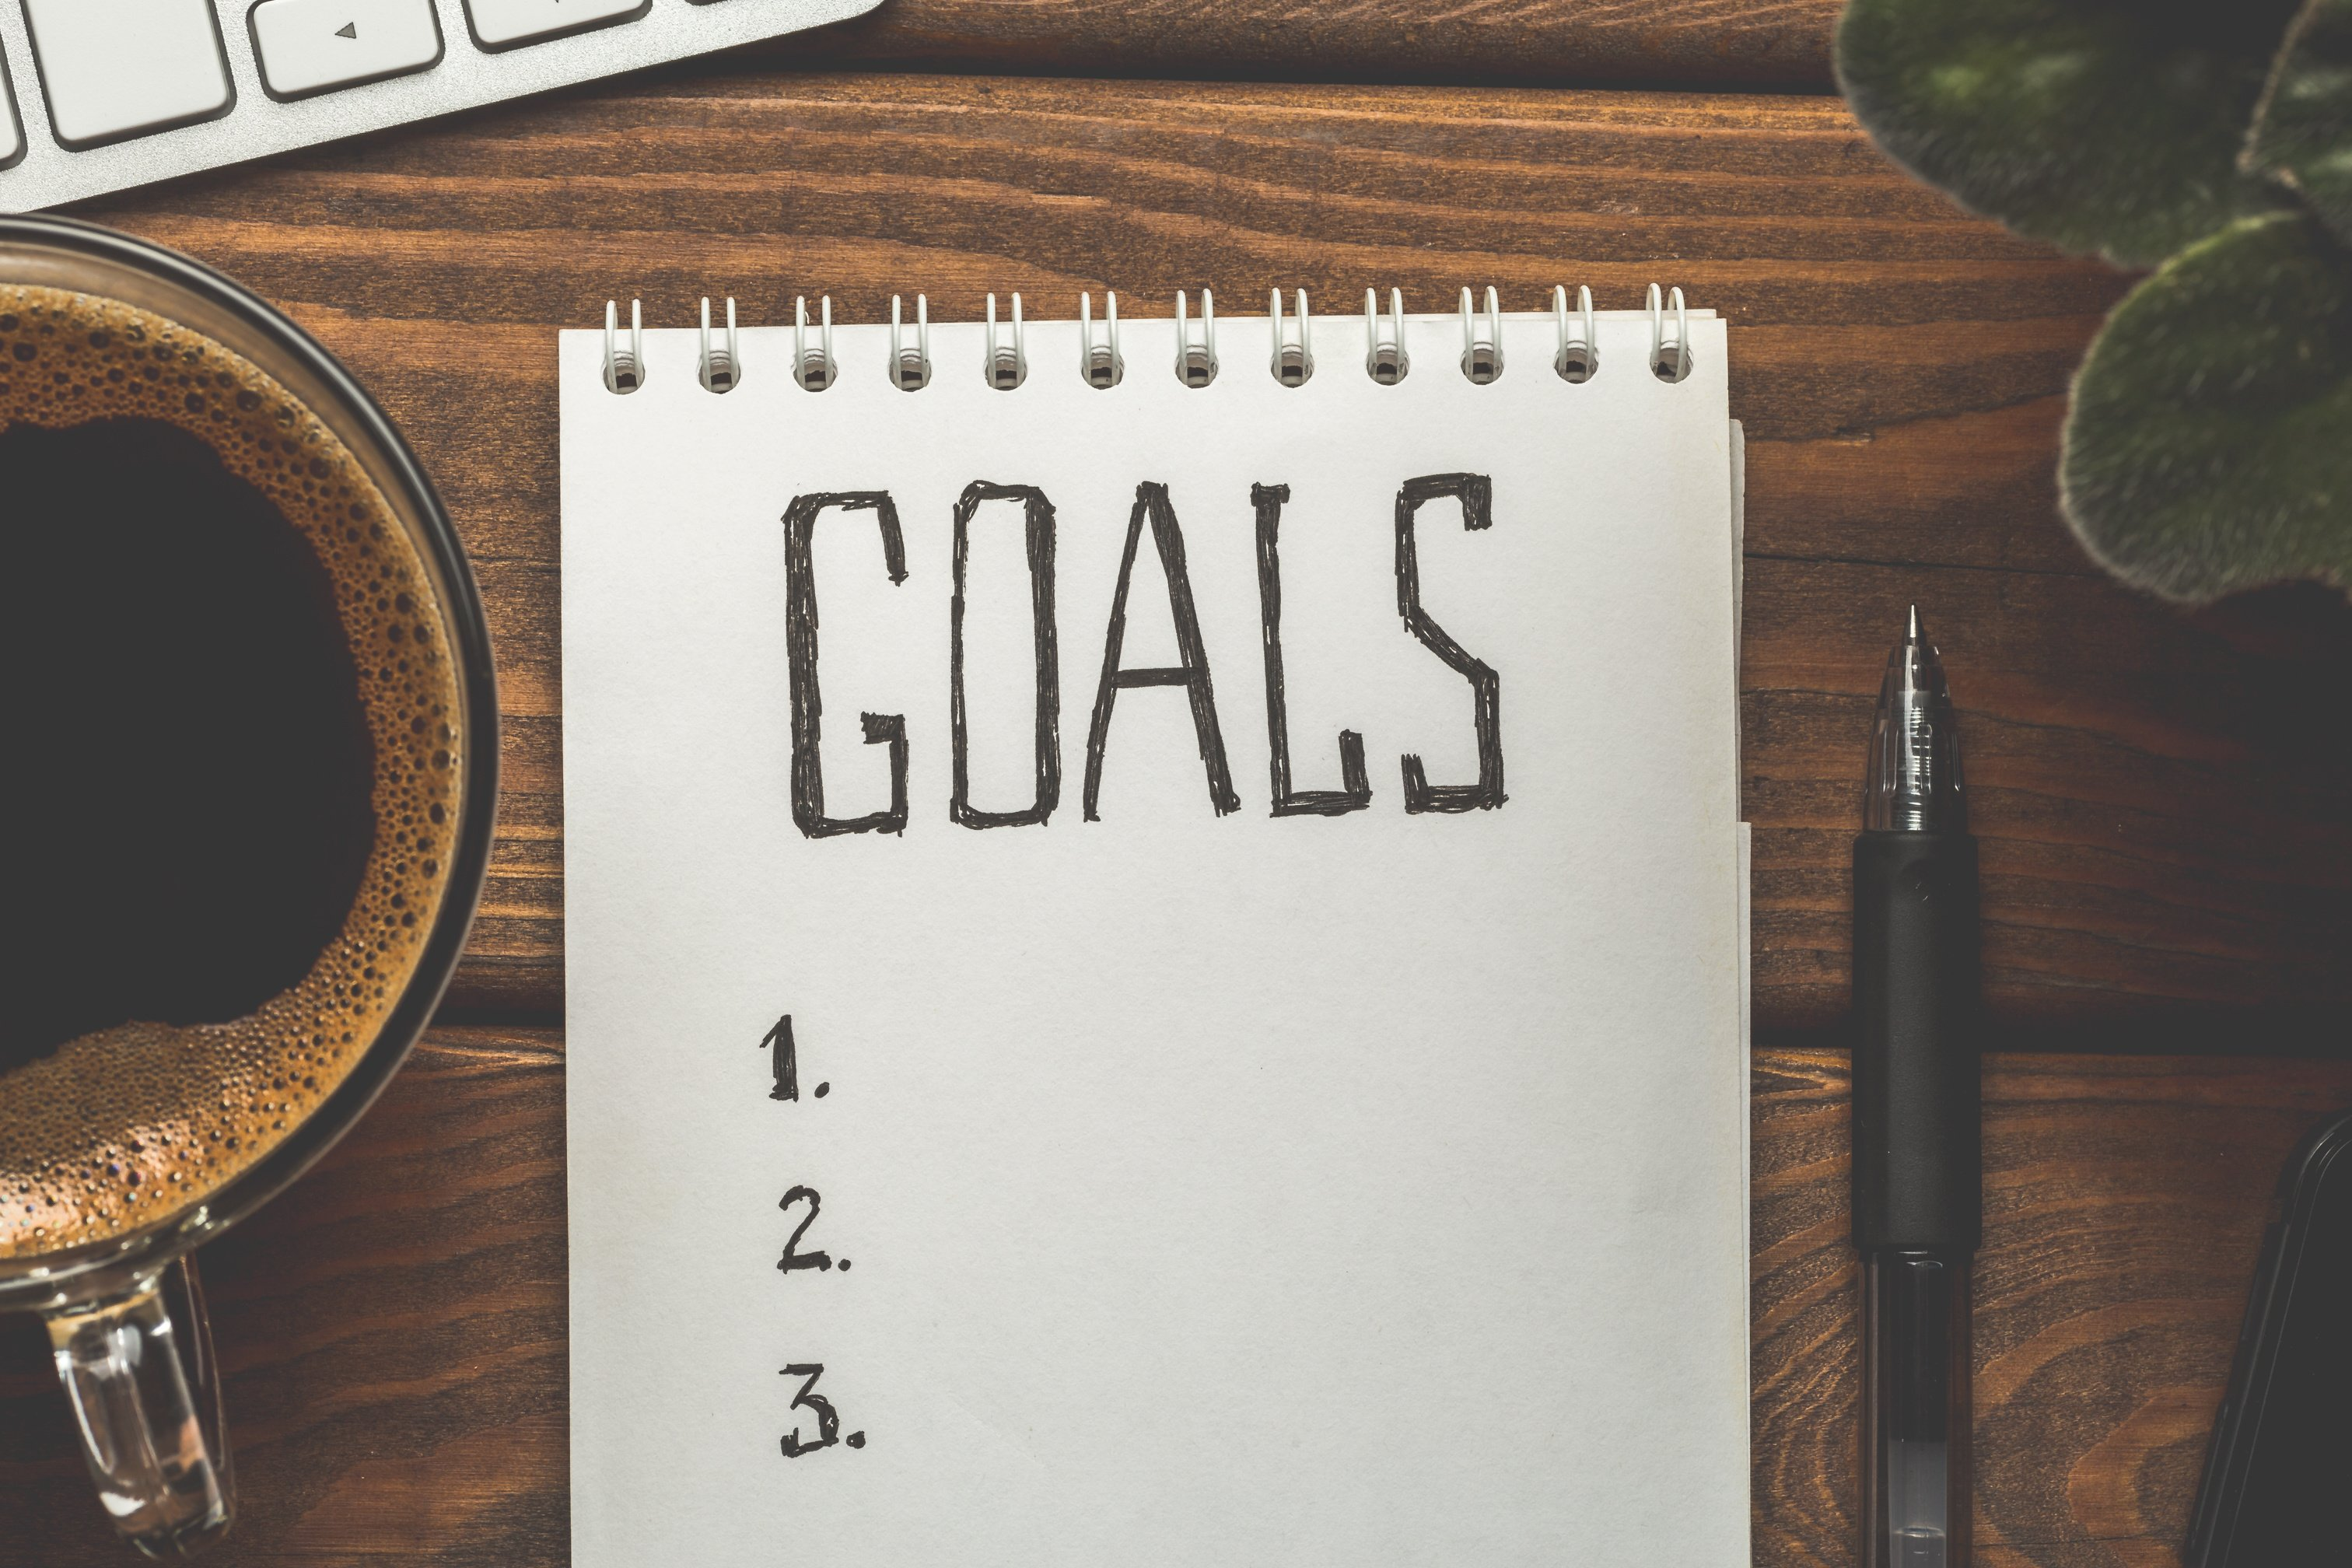 Image of a notepad with Goals as the title